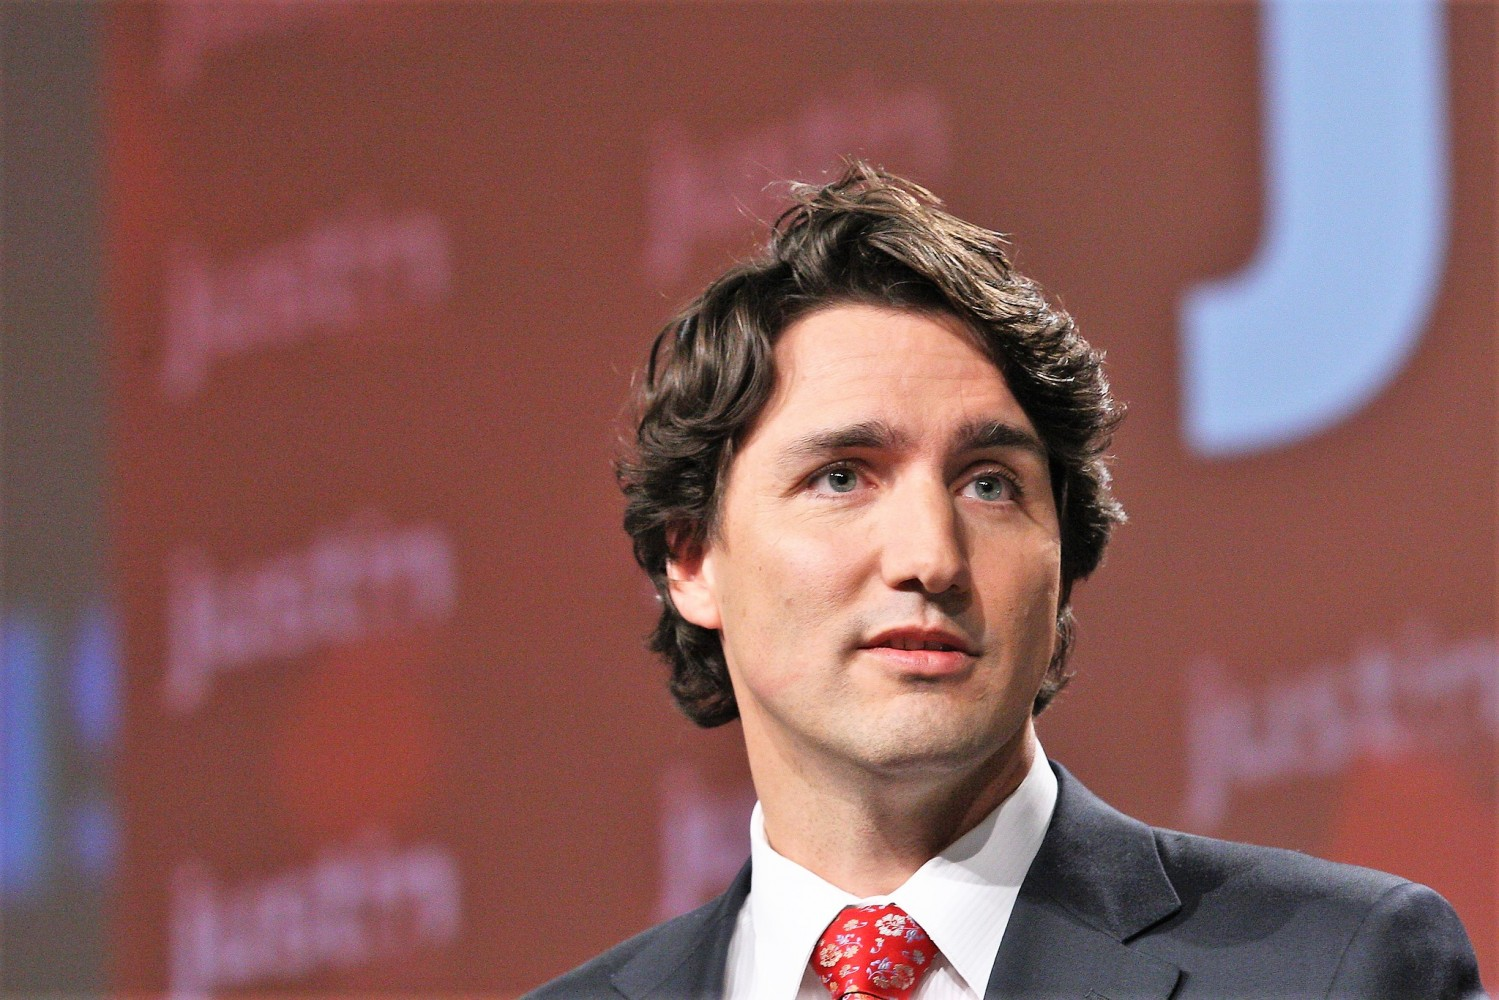 Justin Trudeau is on the ropes; a new book offers a raw look at the man trying to hang onto his title